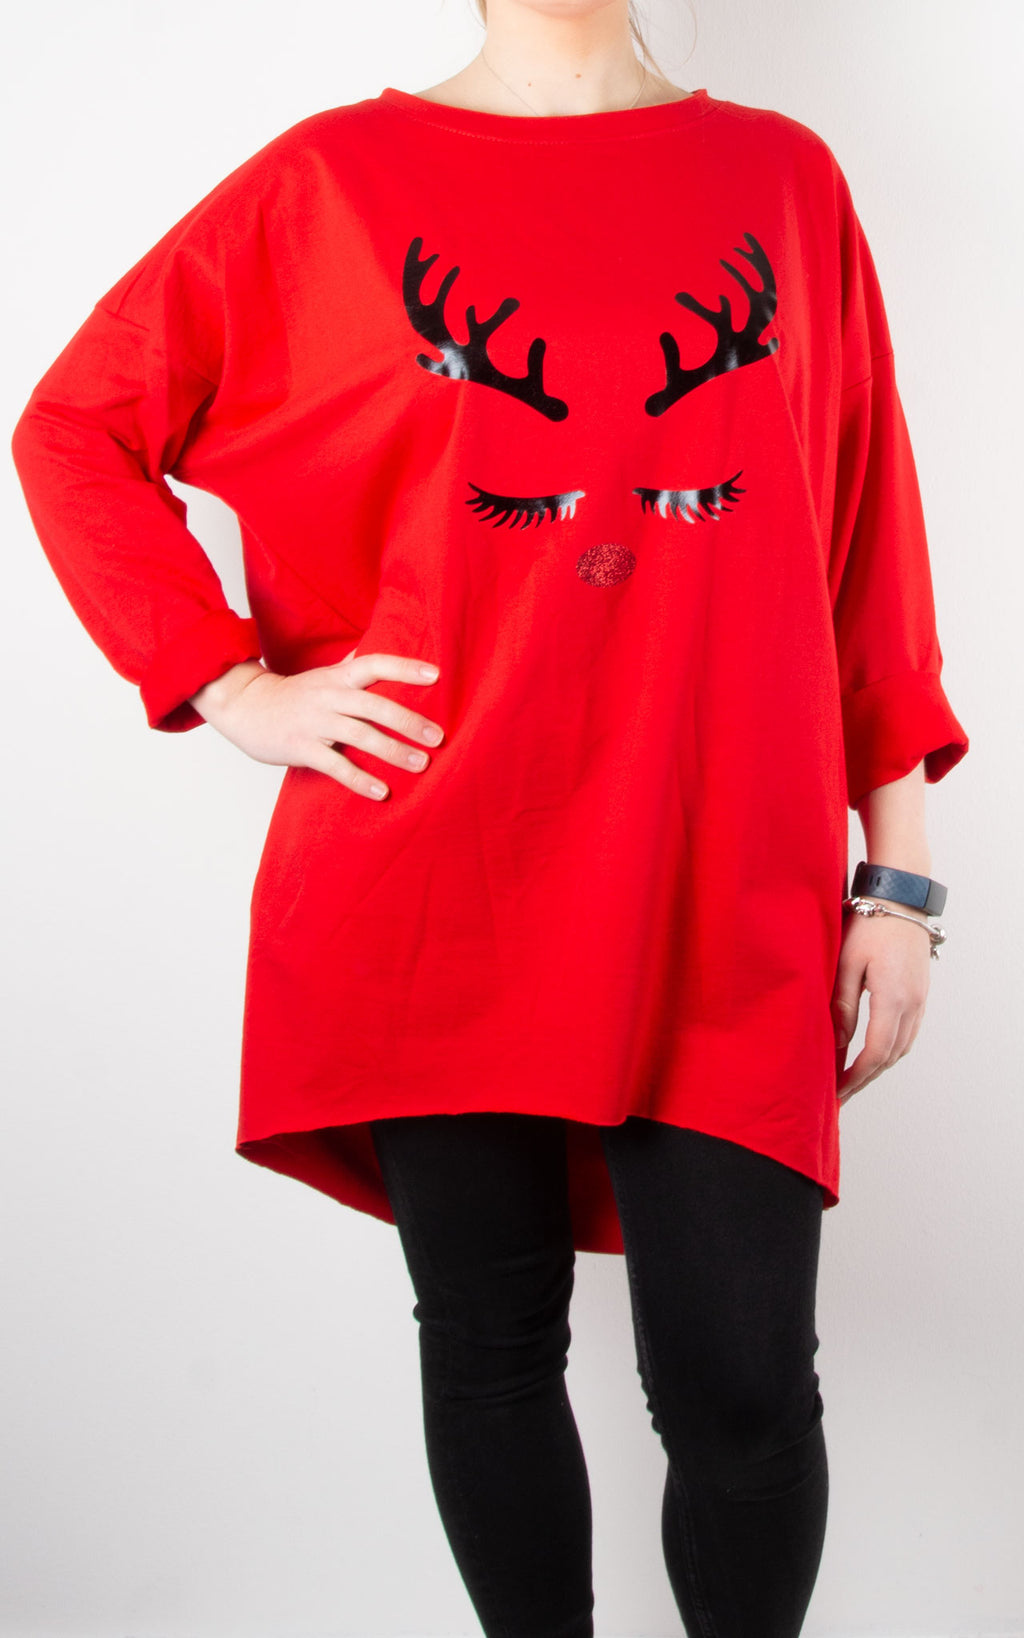 Trixie Top | Eyelashes | Red